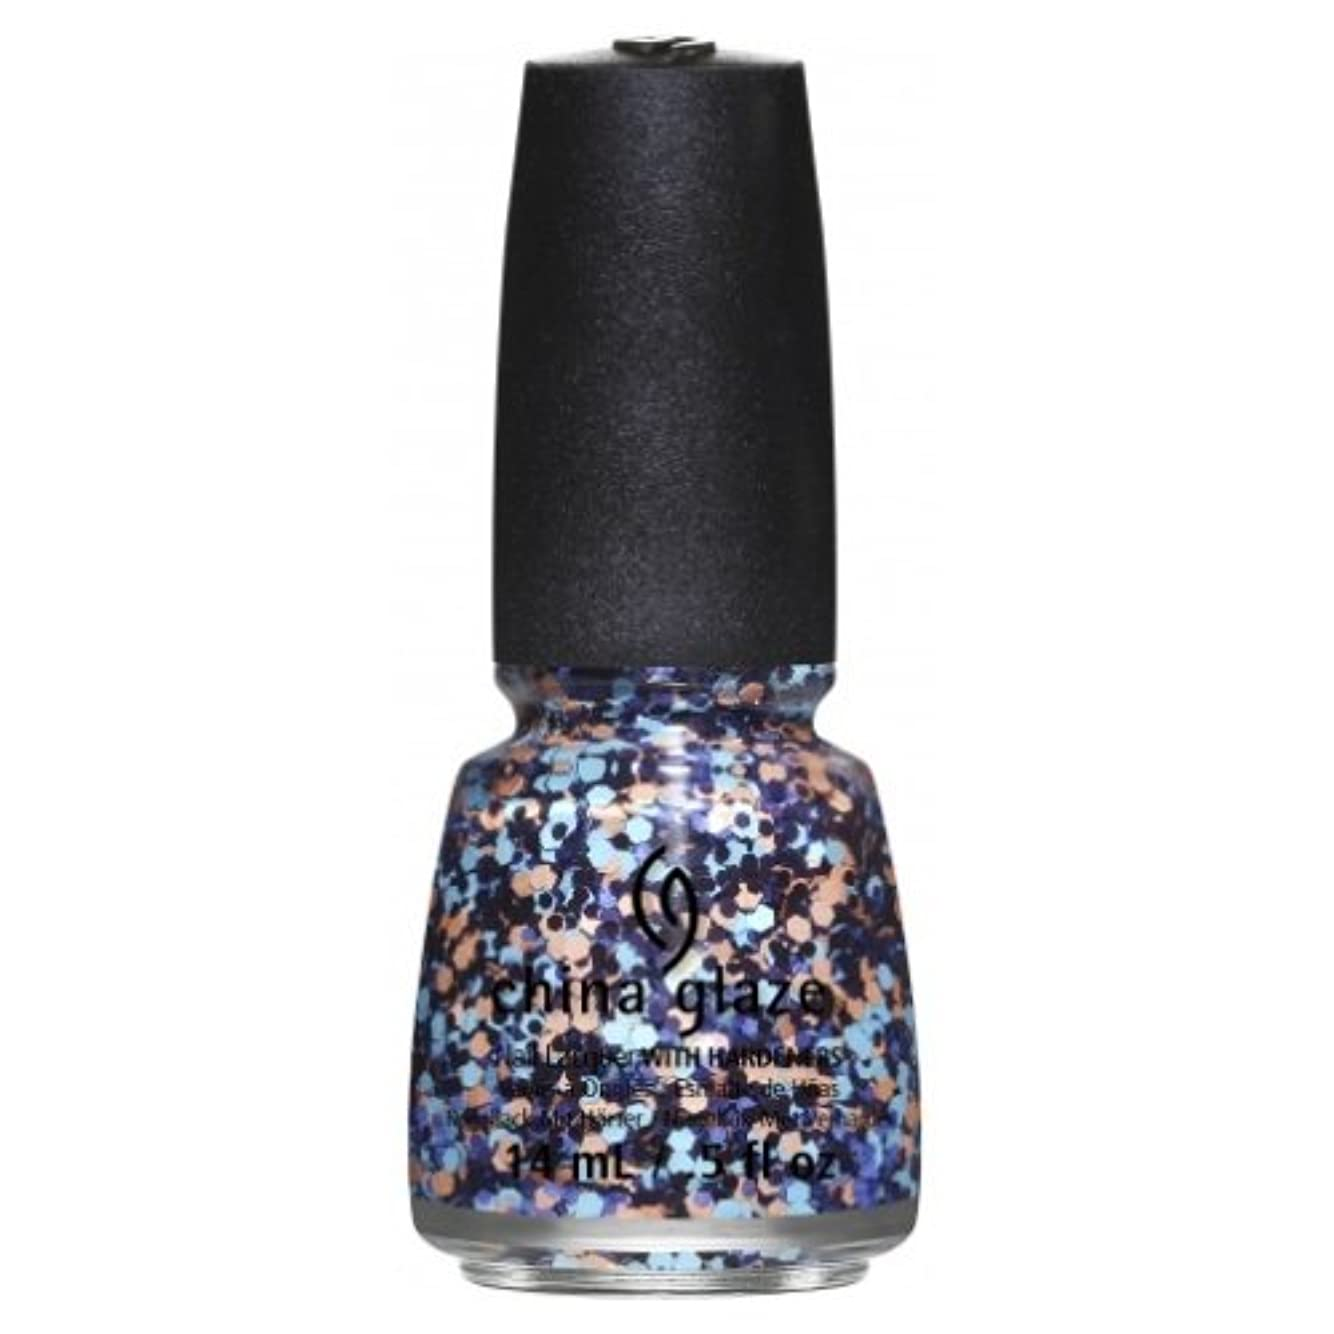 私たち誤解を招く不正直(3 Pack) CHINA GLAZE Nail Lacquer - Suprise Collection - Glitter Up (並行輸入品)